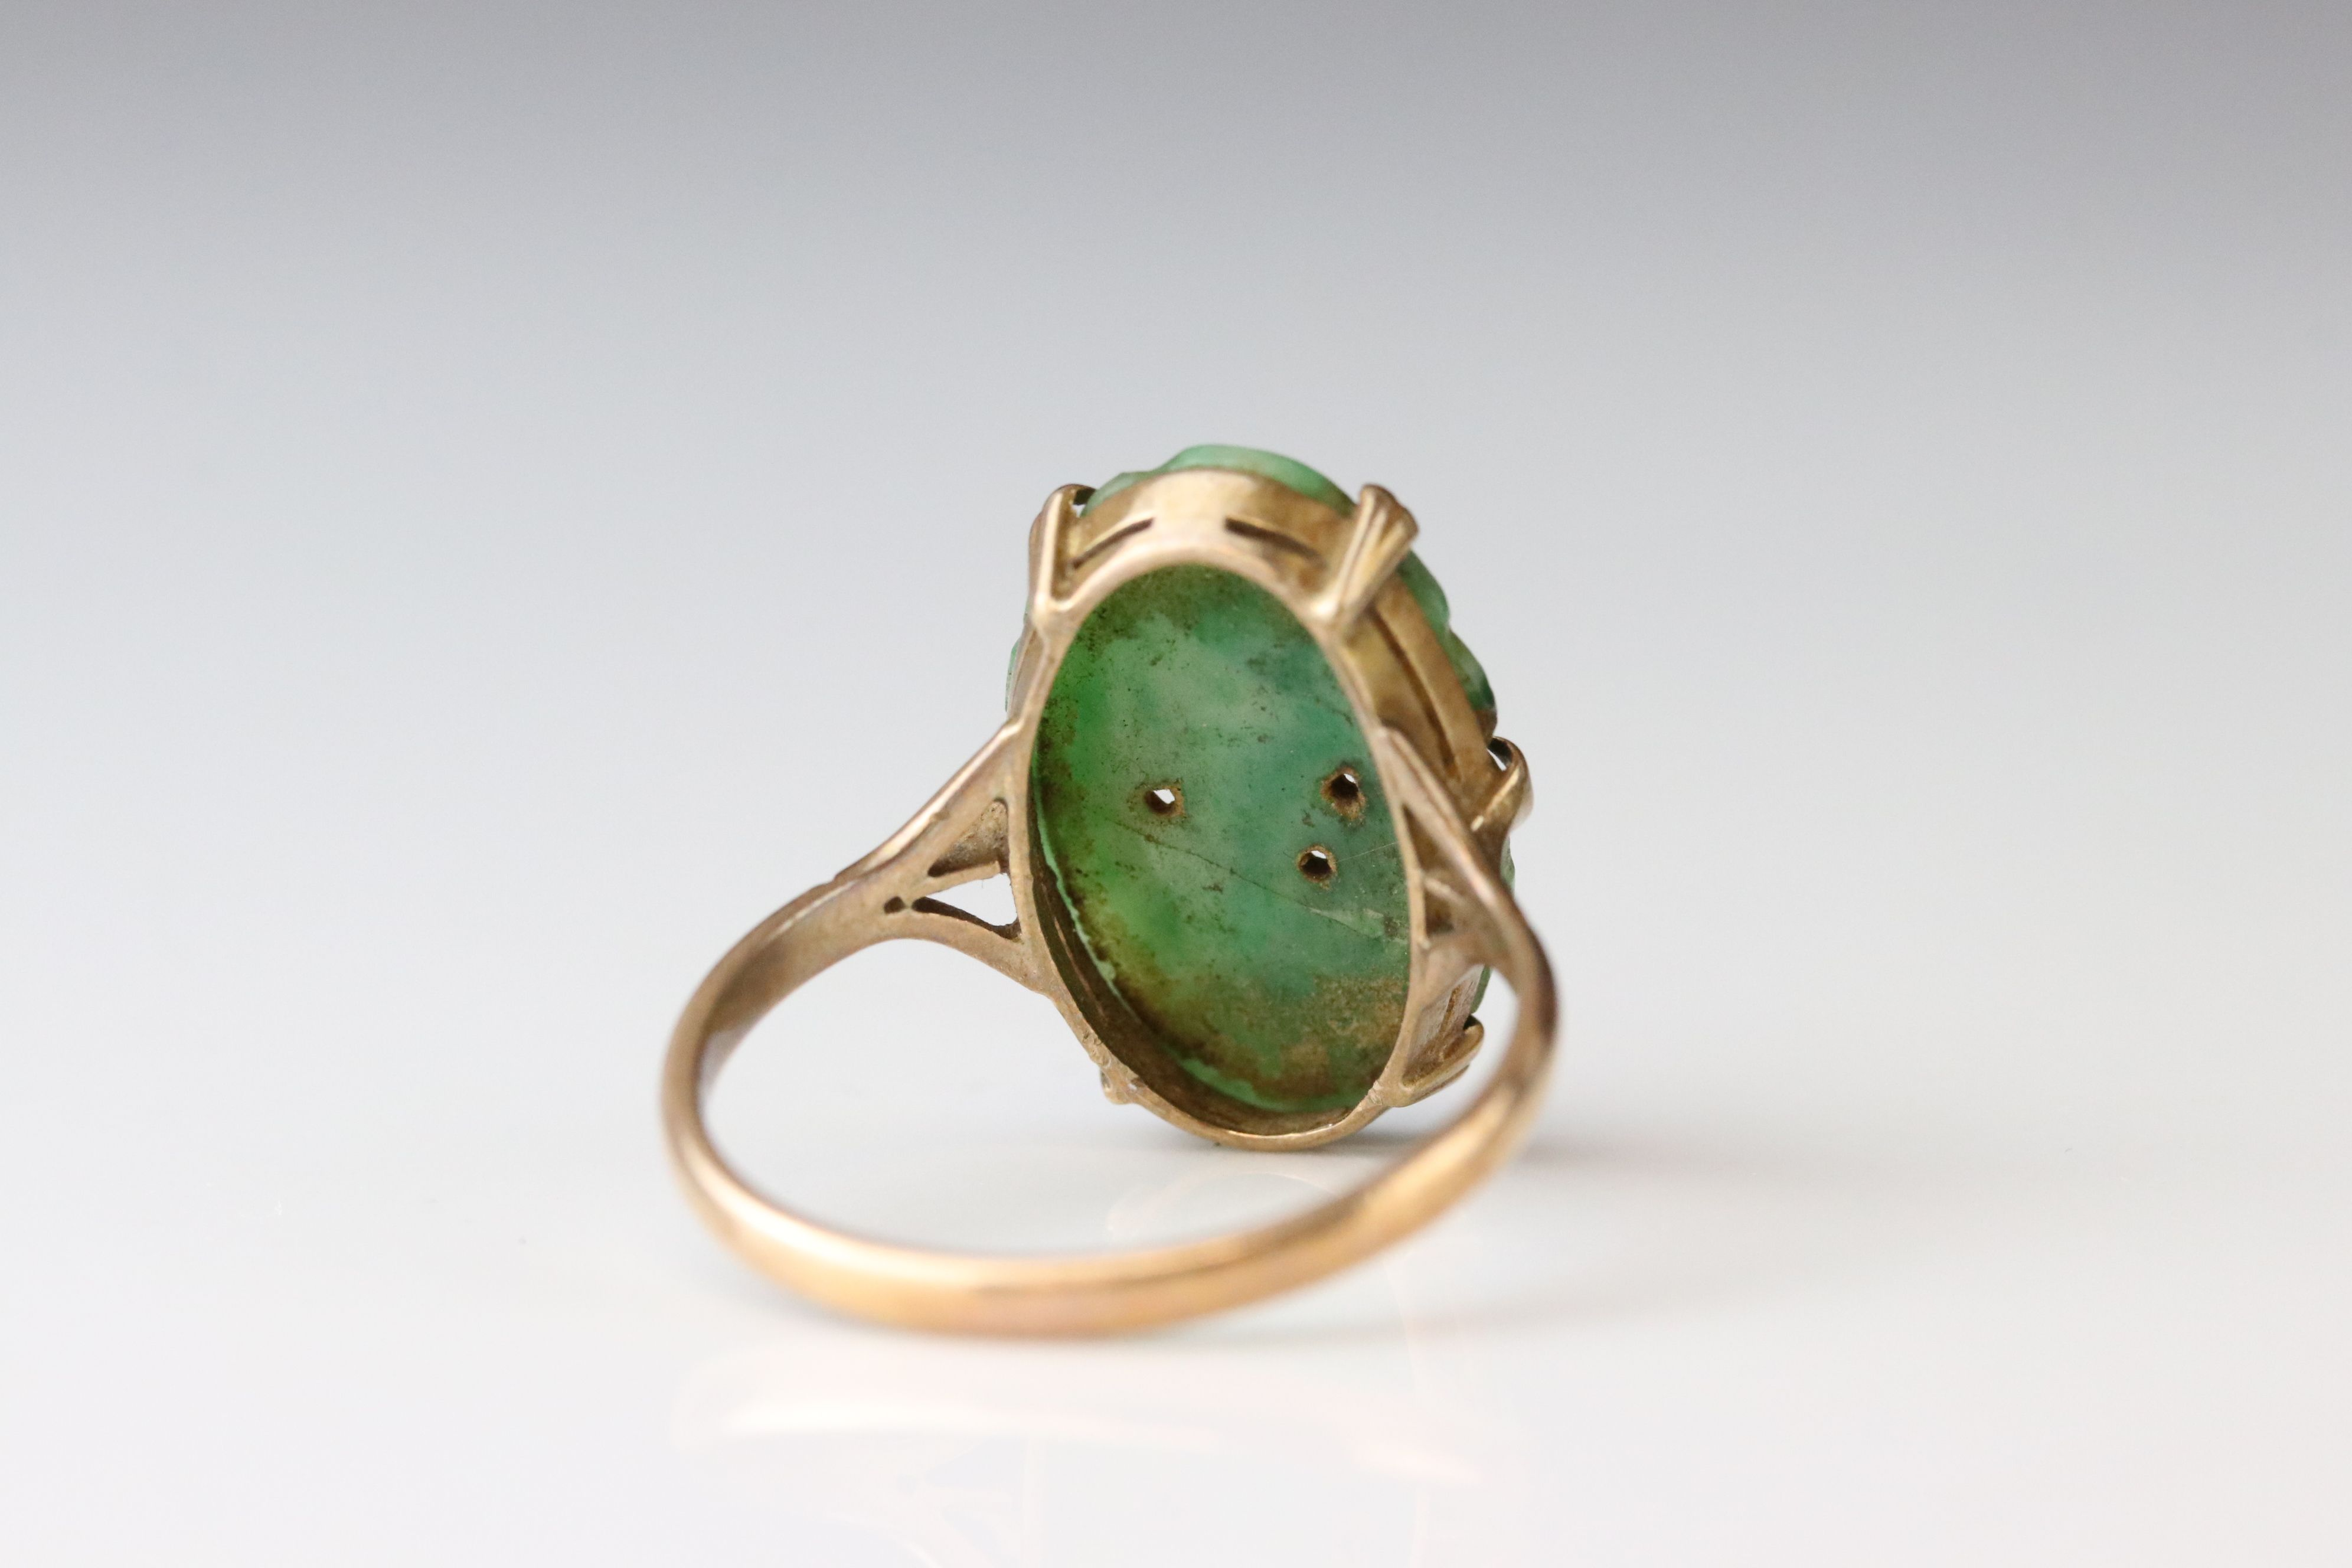 Carved jade 9ct yellow gold ring, the oval pierced carved jade measuring approx 18mm x 11.5mm, - Image 5 of 5